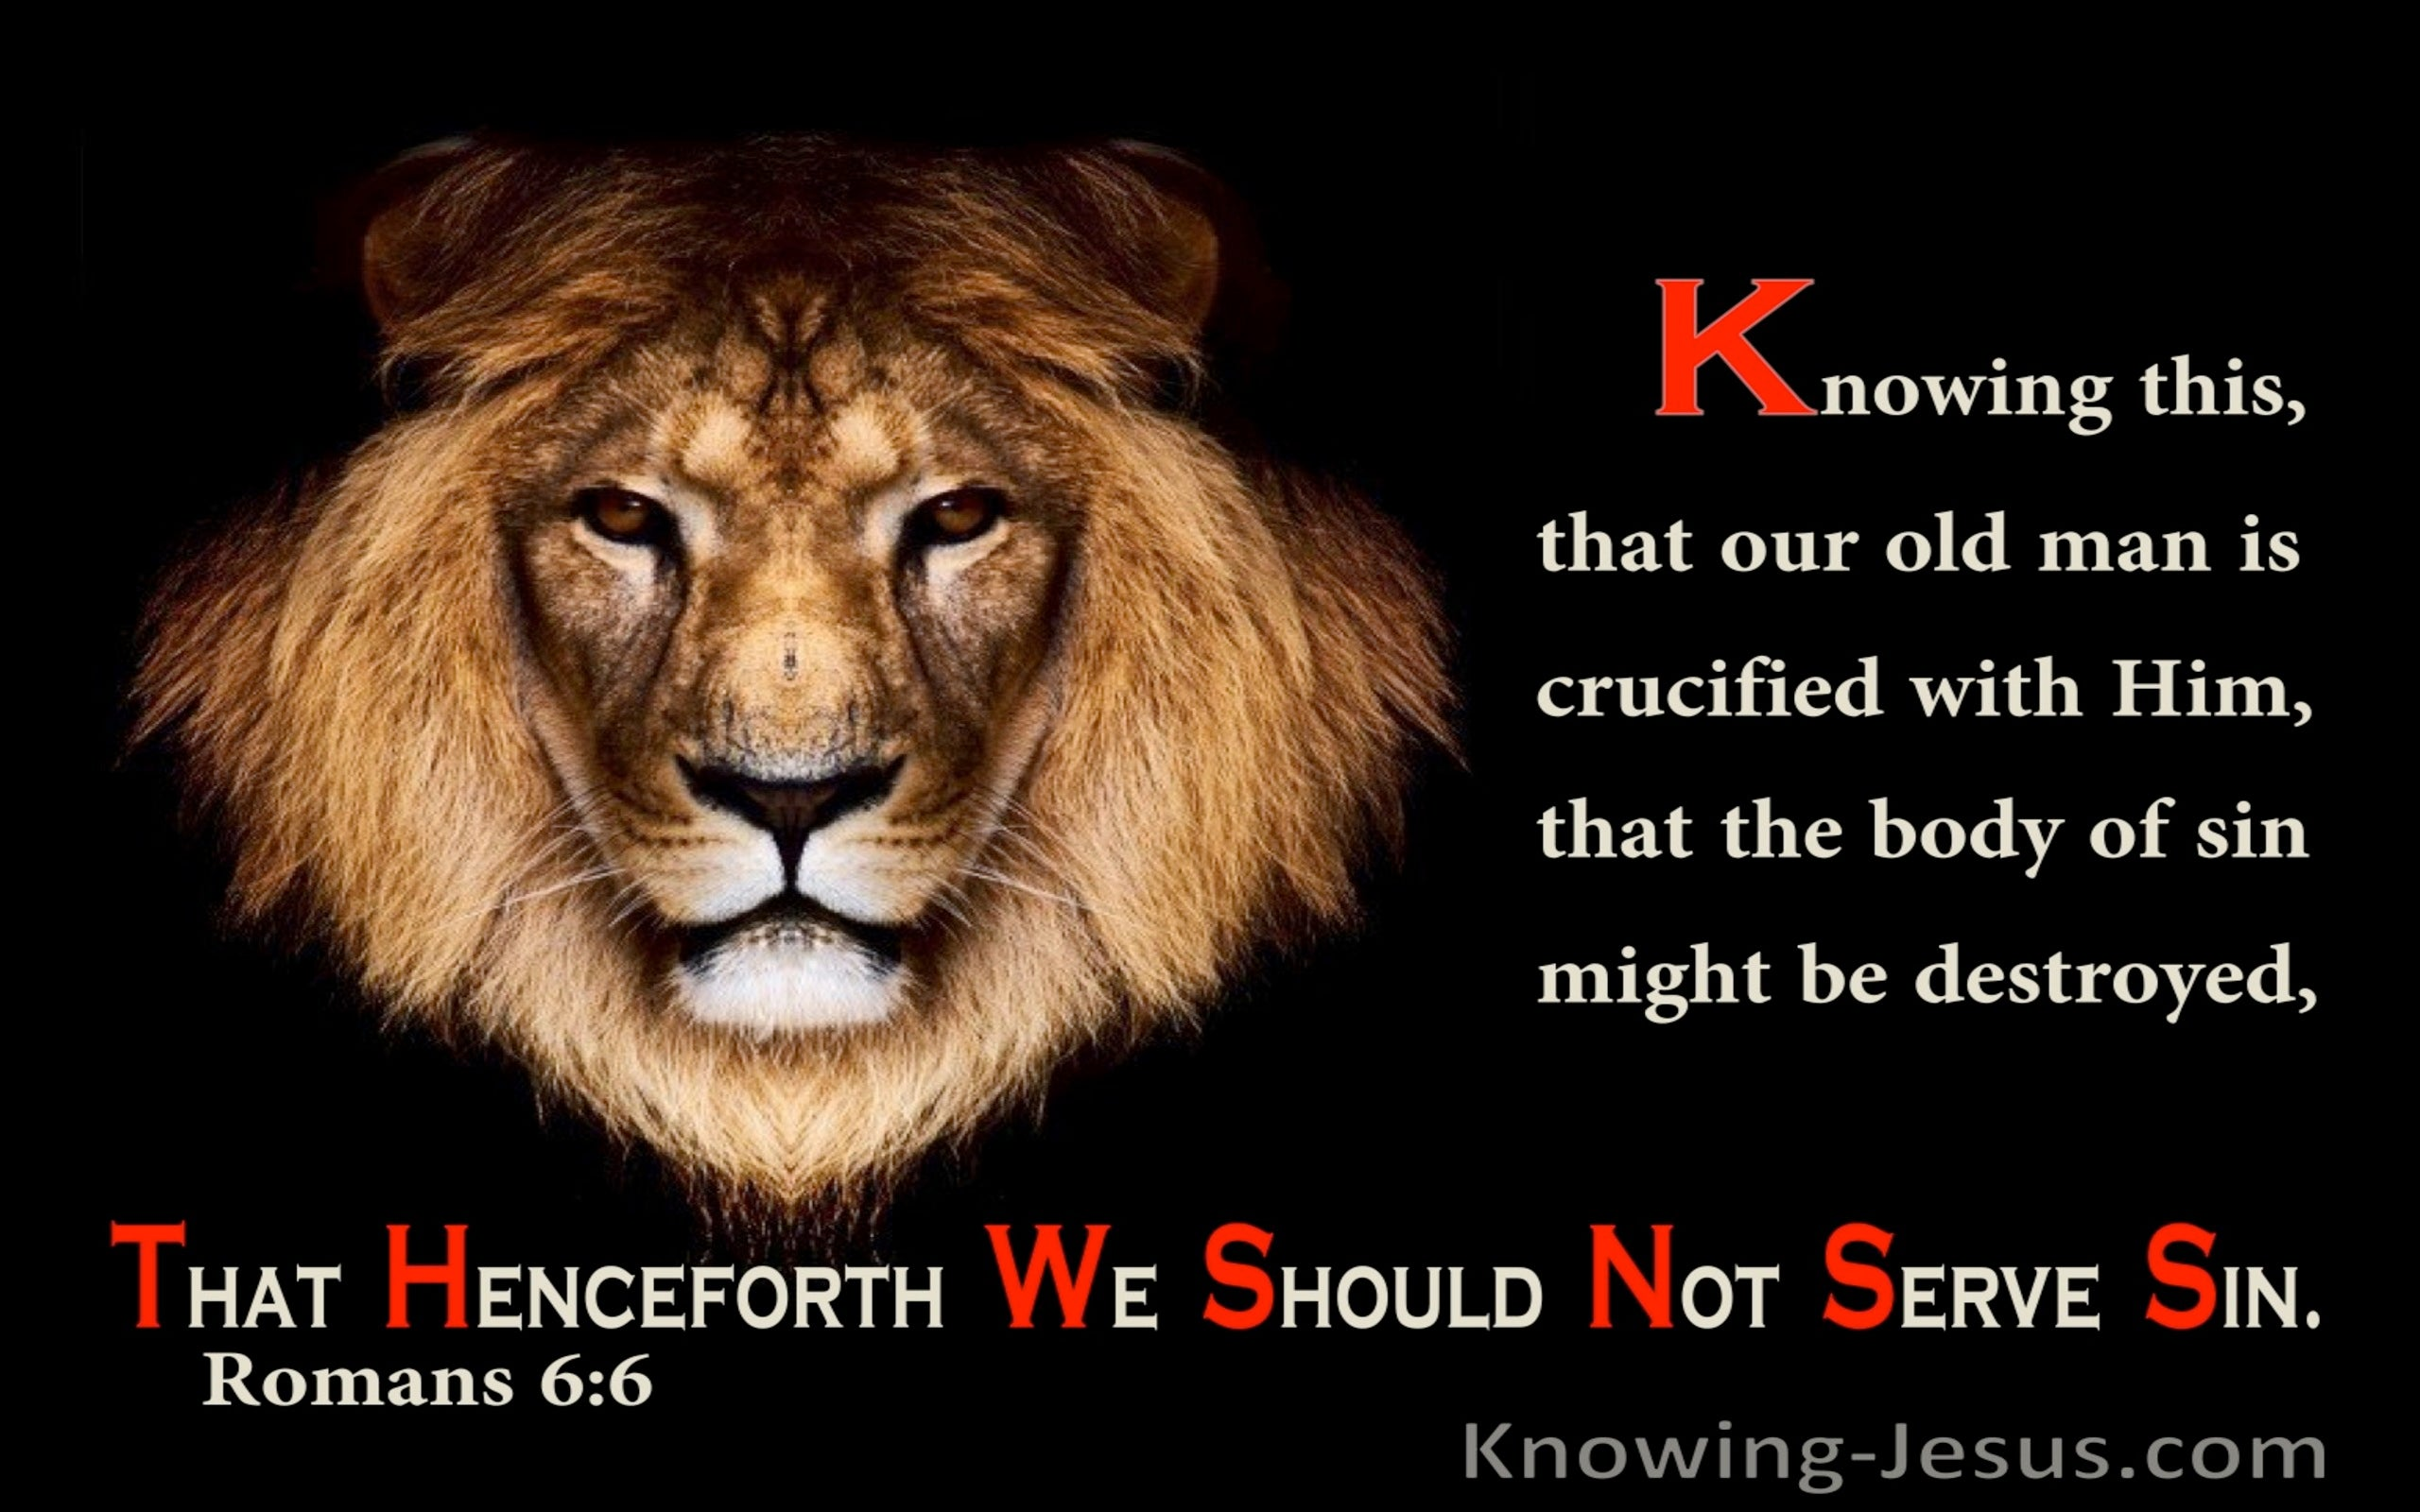 Romans 6:6 Knowing This Our Old Man Is Crucified With Him (utmost)04:10